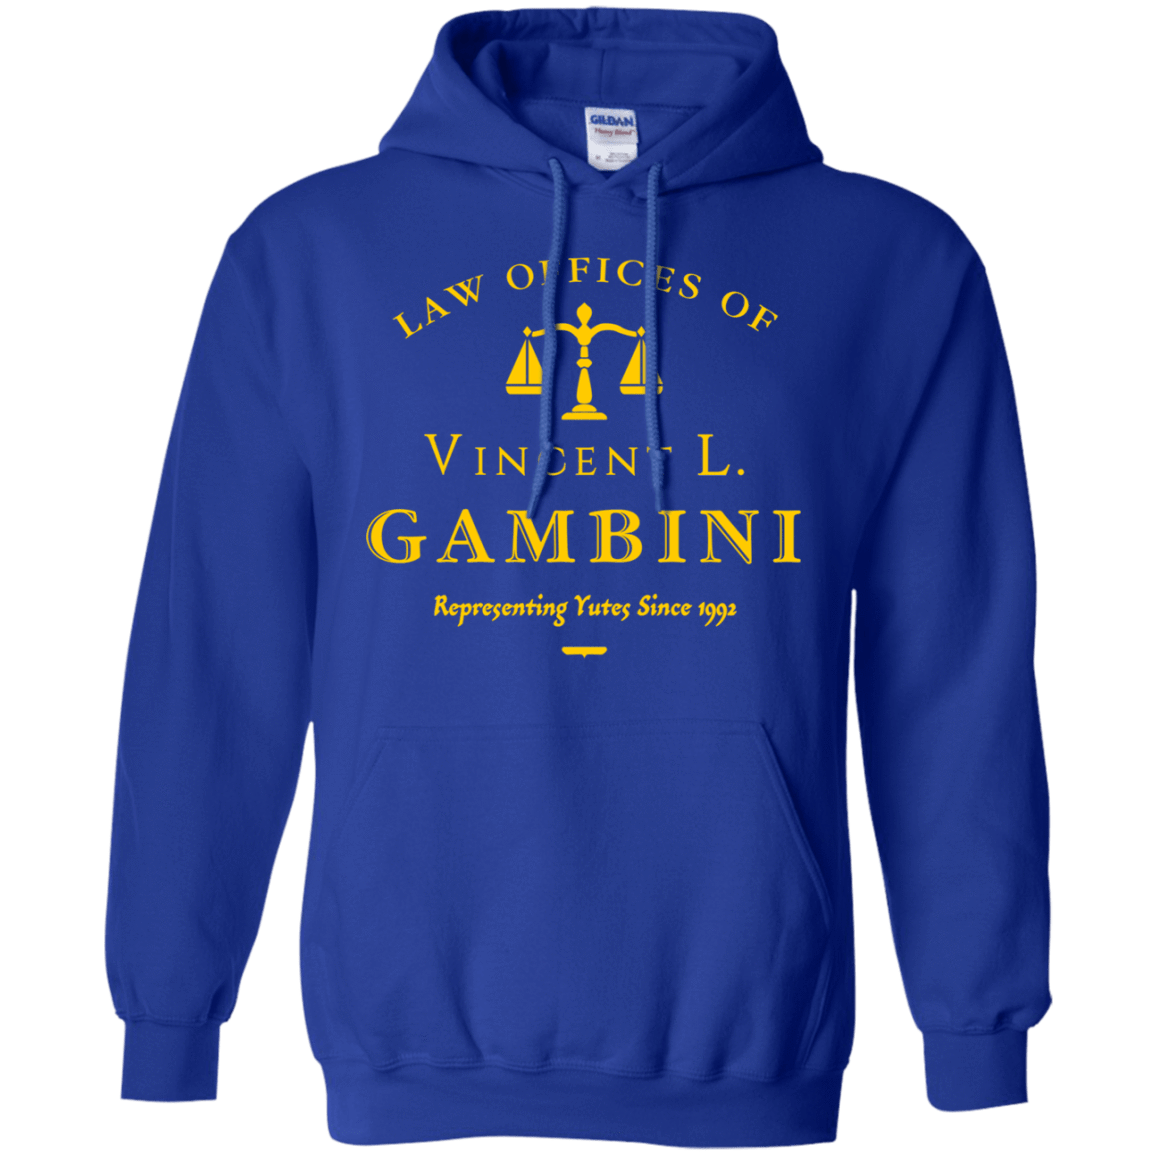 Law Offices Of Vincent L. Gambini T-Shirts, Hoodies 541-4765-77529019-23175 - Tee Ript